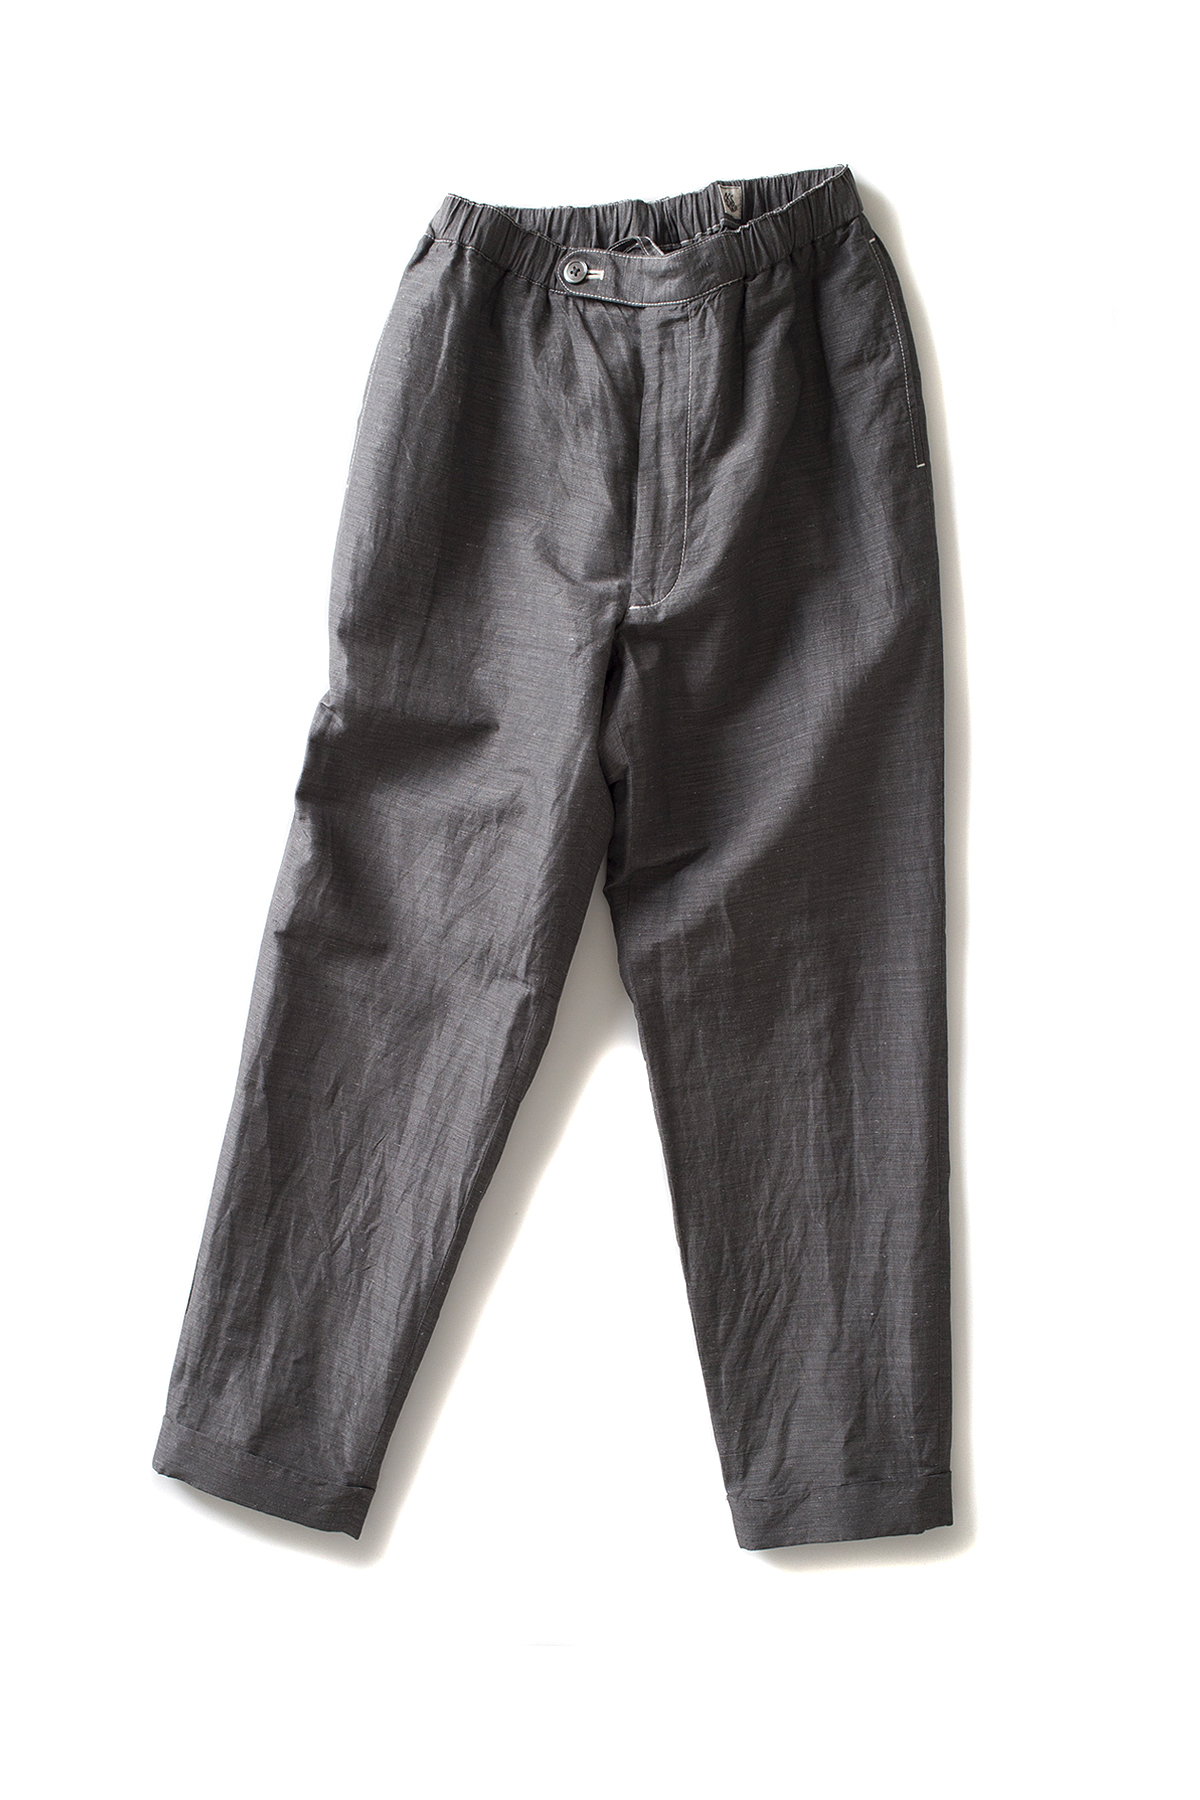 Kaptain Sunshine : Traveller Trousers (Gray)